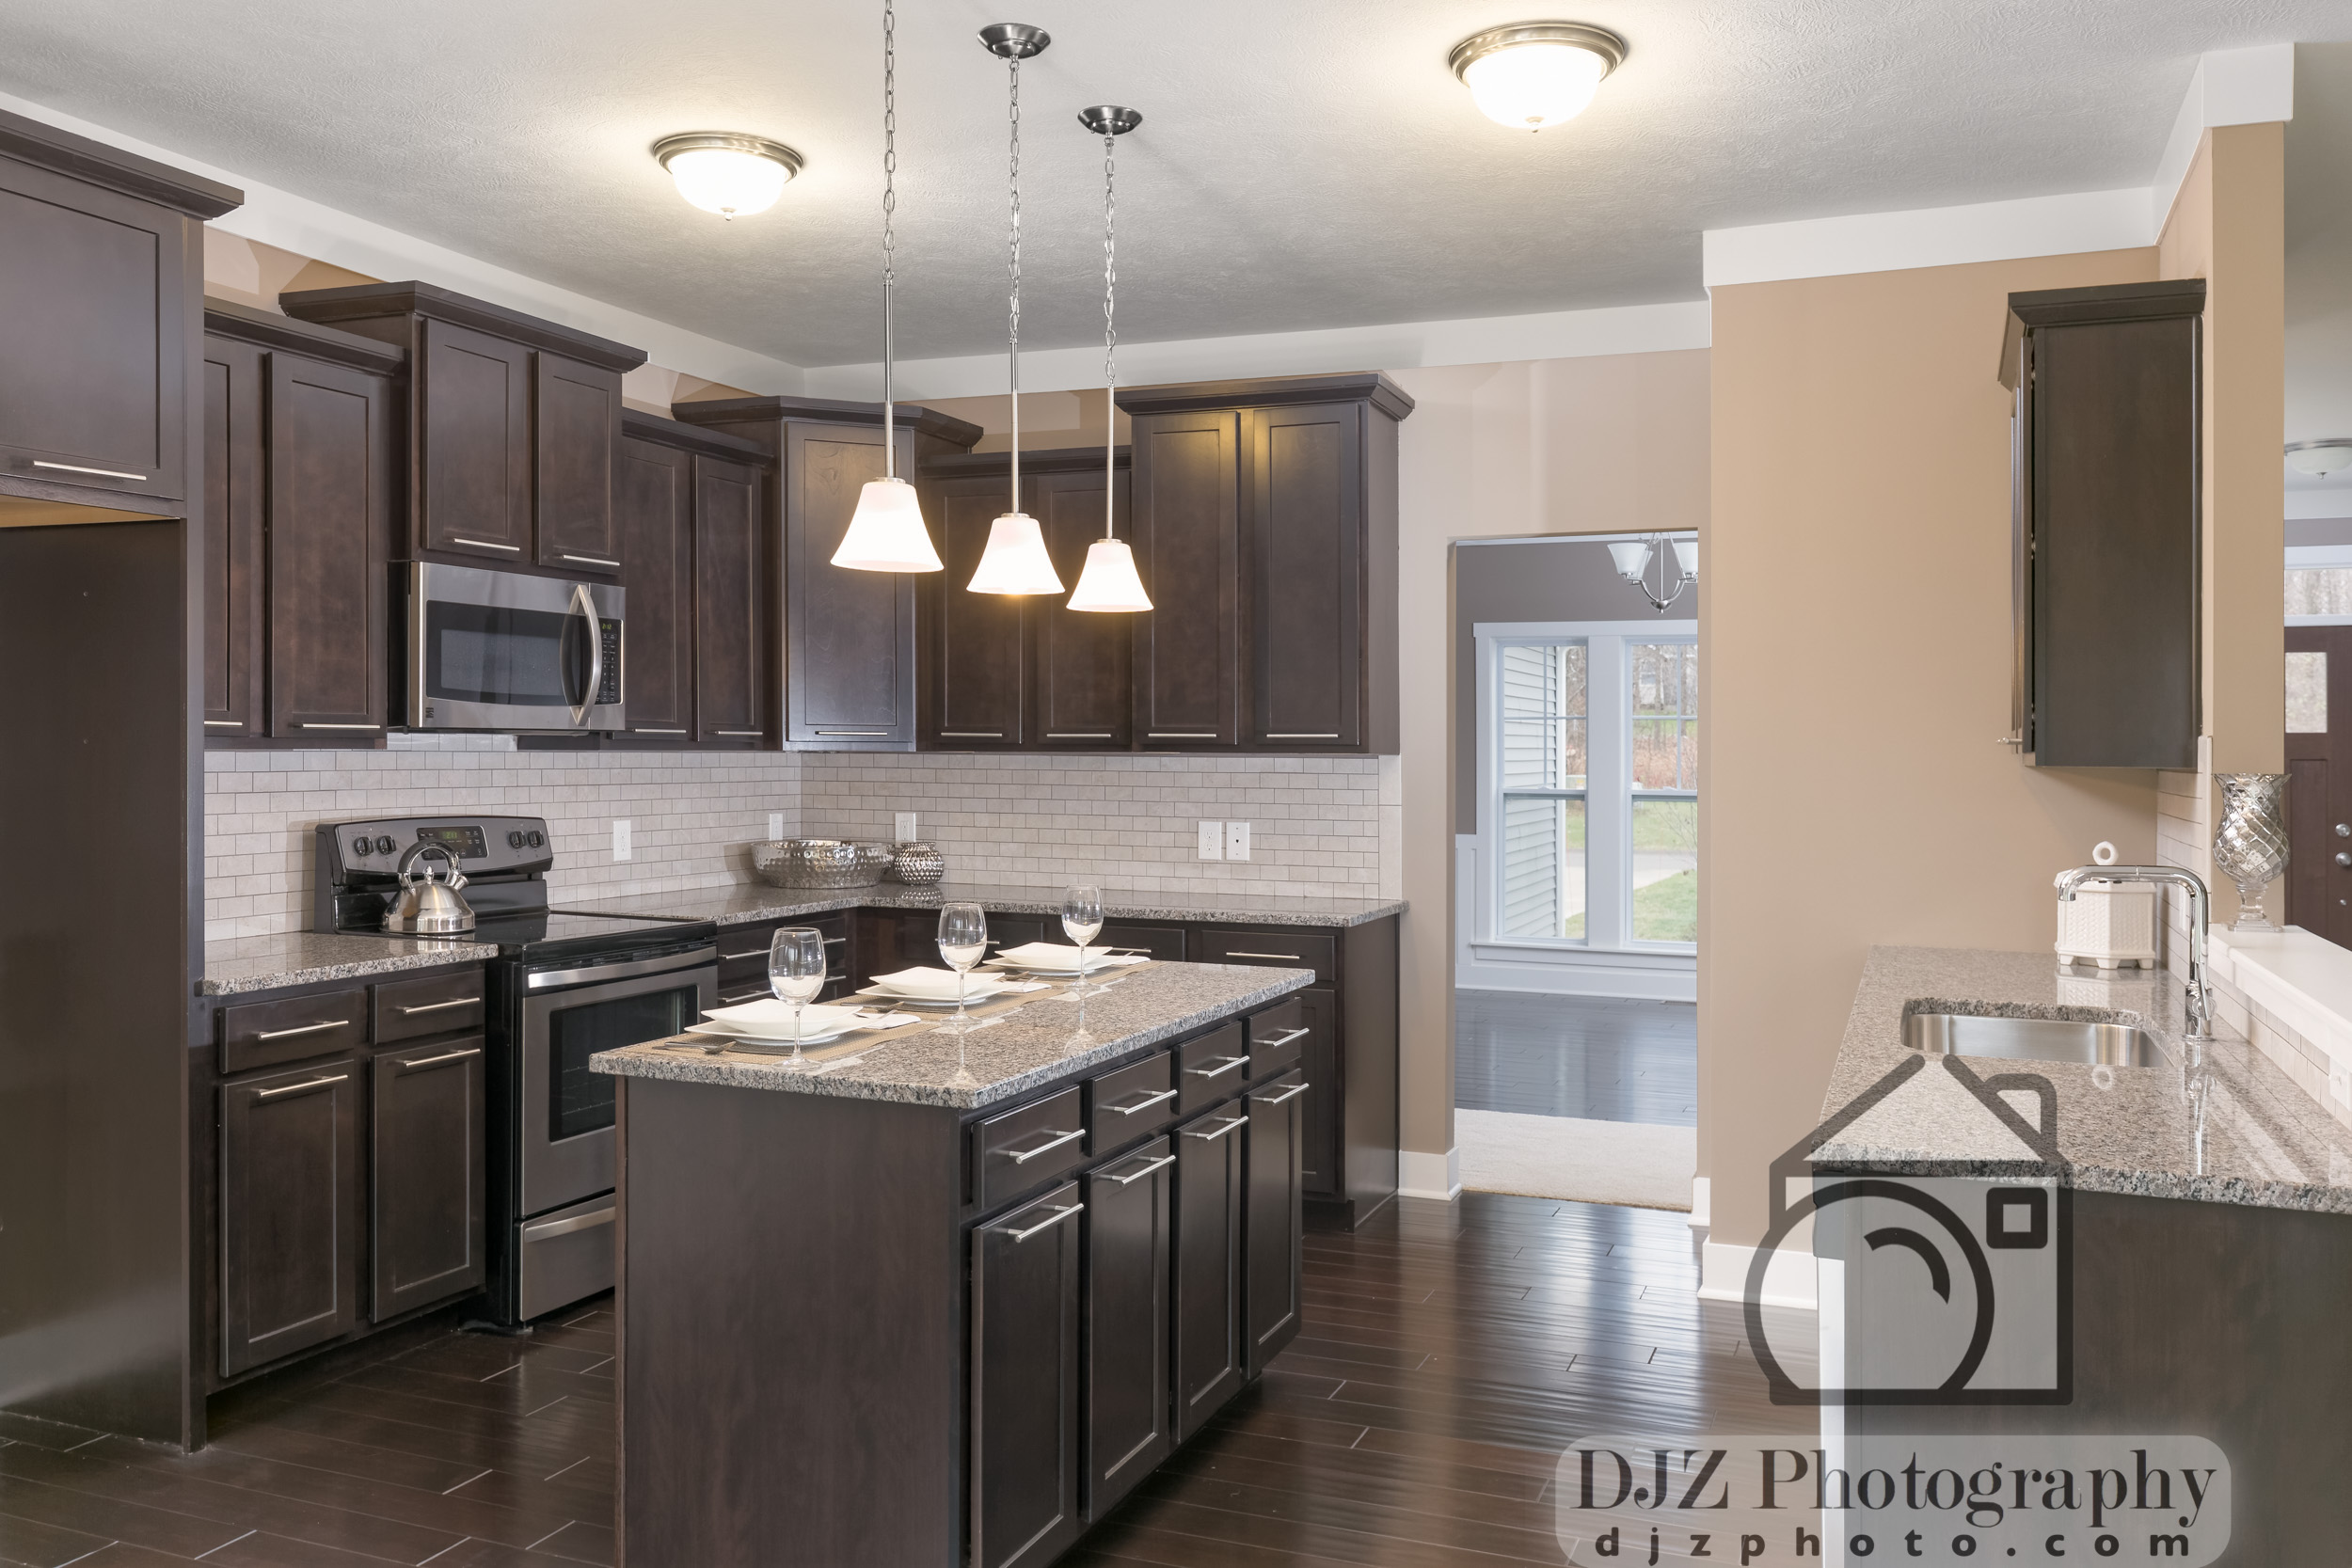 Kitchen 5 - Real Estate Photography